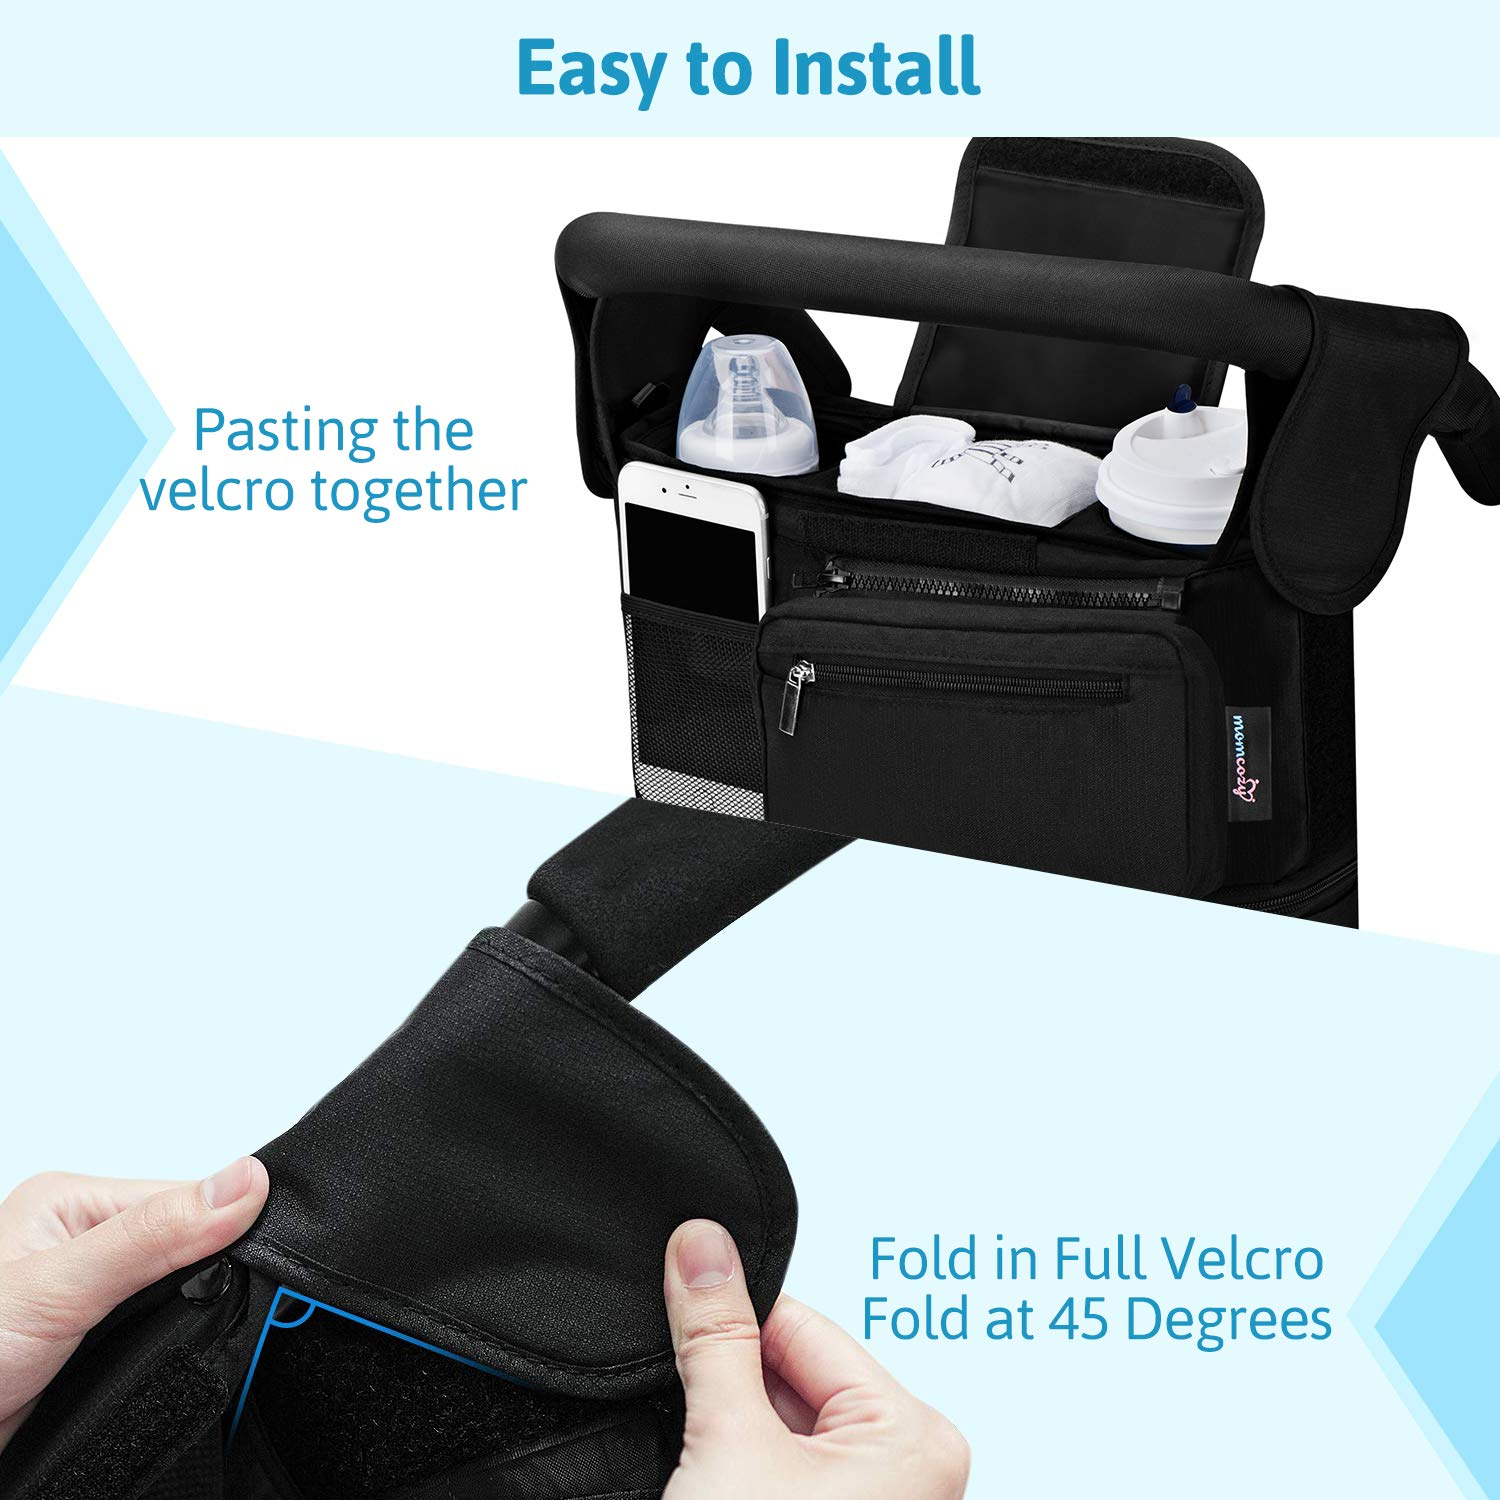 Universal Stroller Organizer, Momcozy Insulated Stroller Cup Holders, Detachable Phone Bag & Shoulder Strap, Fits for Stroller Like Uppababy, Baby Jogger, Britax, Bugaboo, BOB, Umbrella by Momcozy (Image #5)